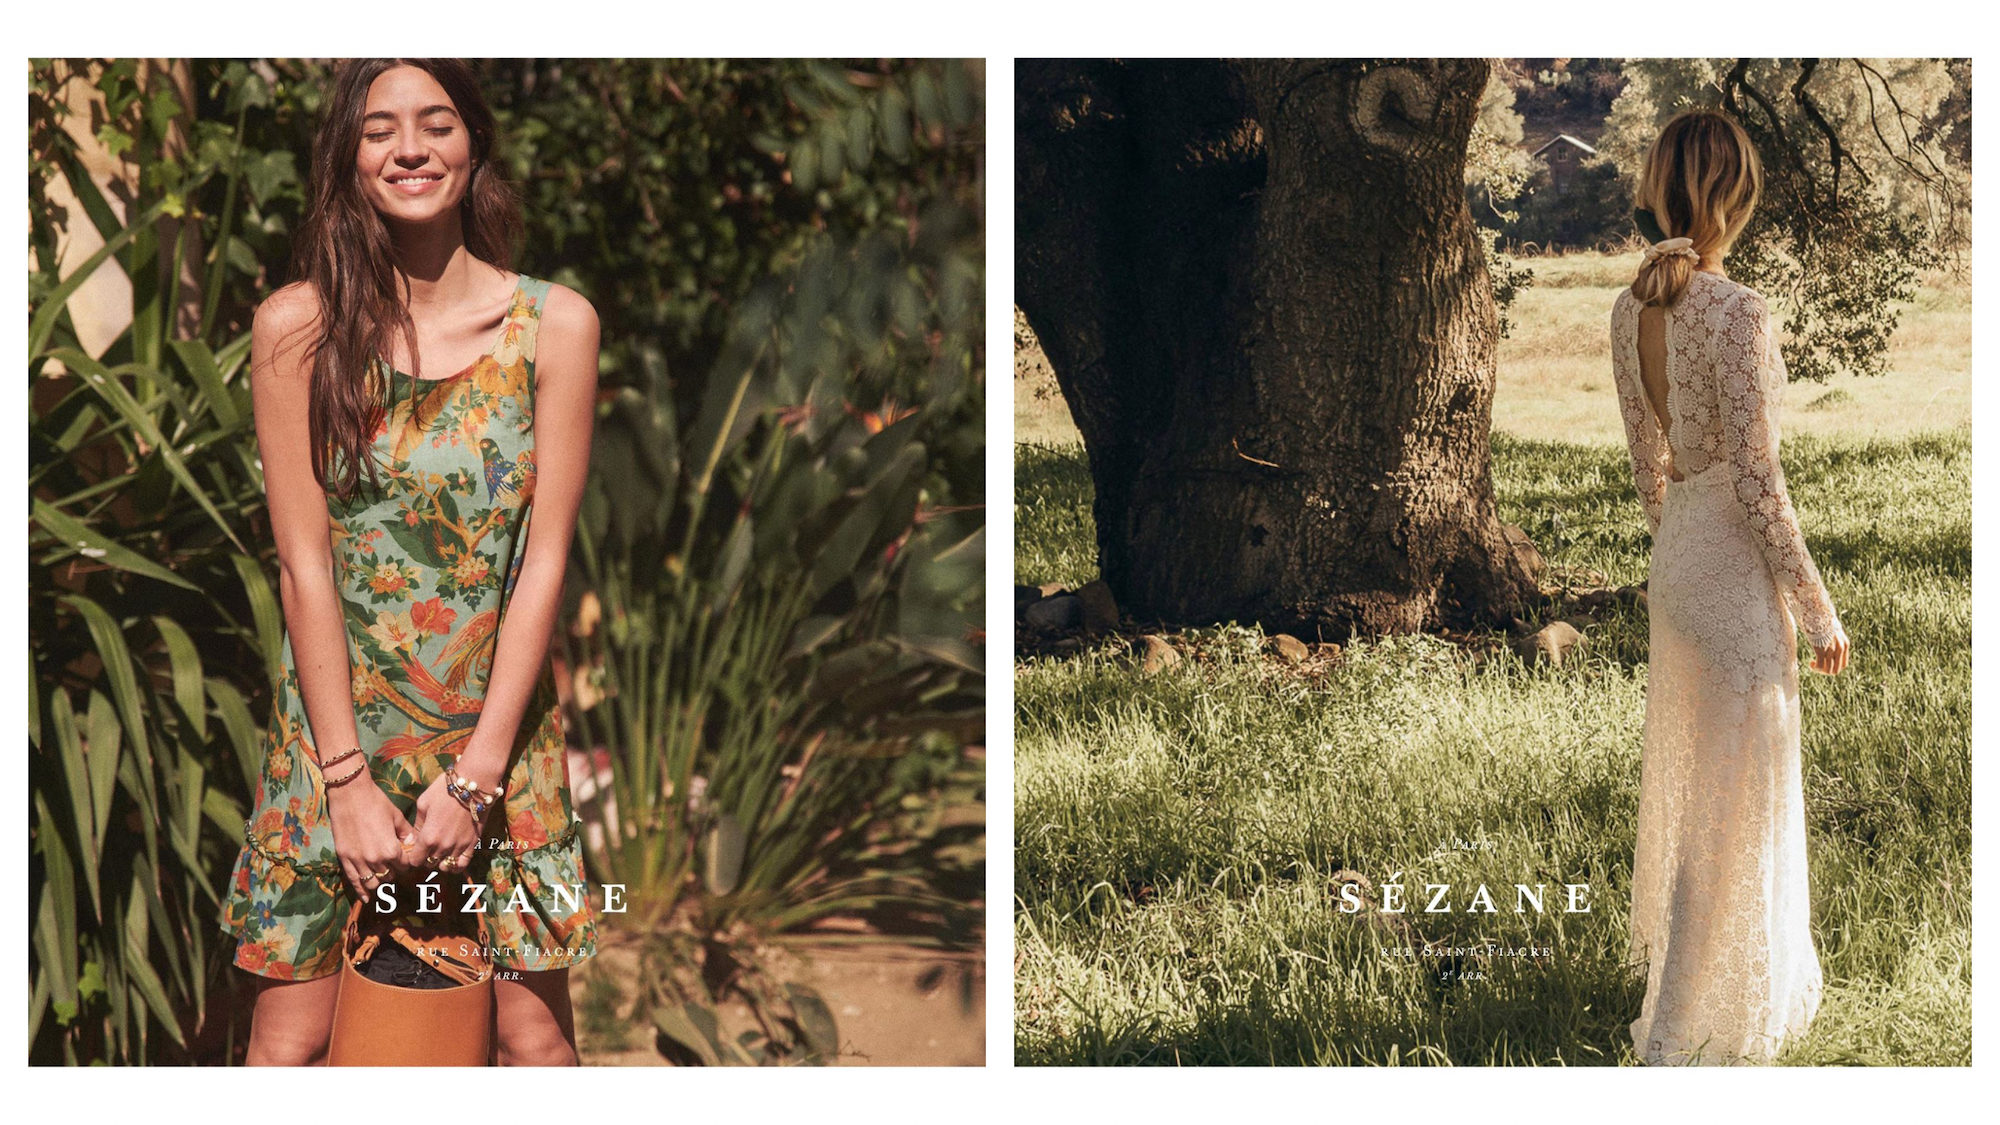 Another go-to brand for Parisians is Sézane, which offers well-cut dresses like this green flowery number for summer (left). Sézane also does wedding dresses like this lacy number worn by a model standing in a field (right).